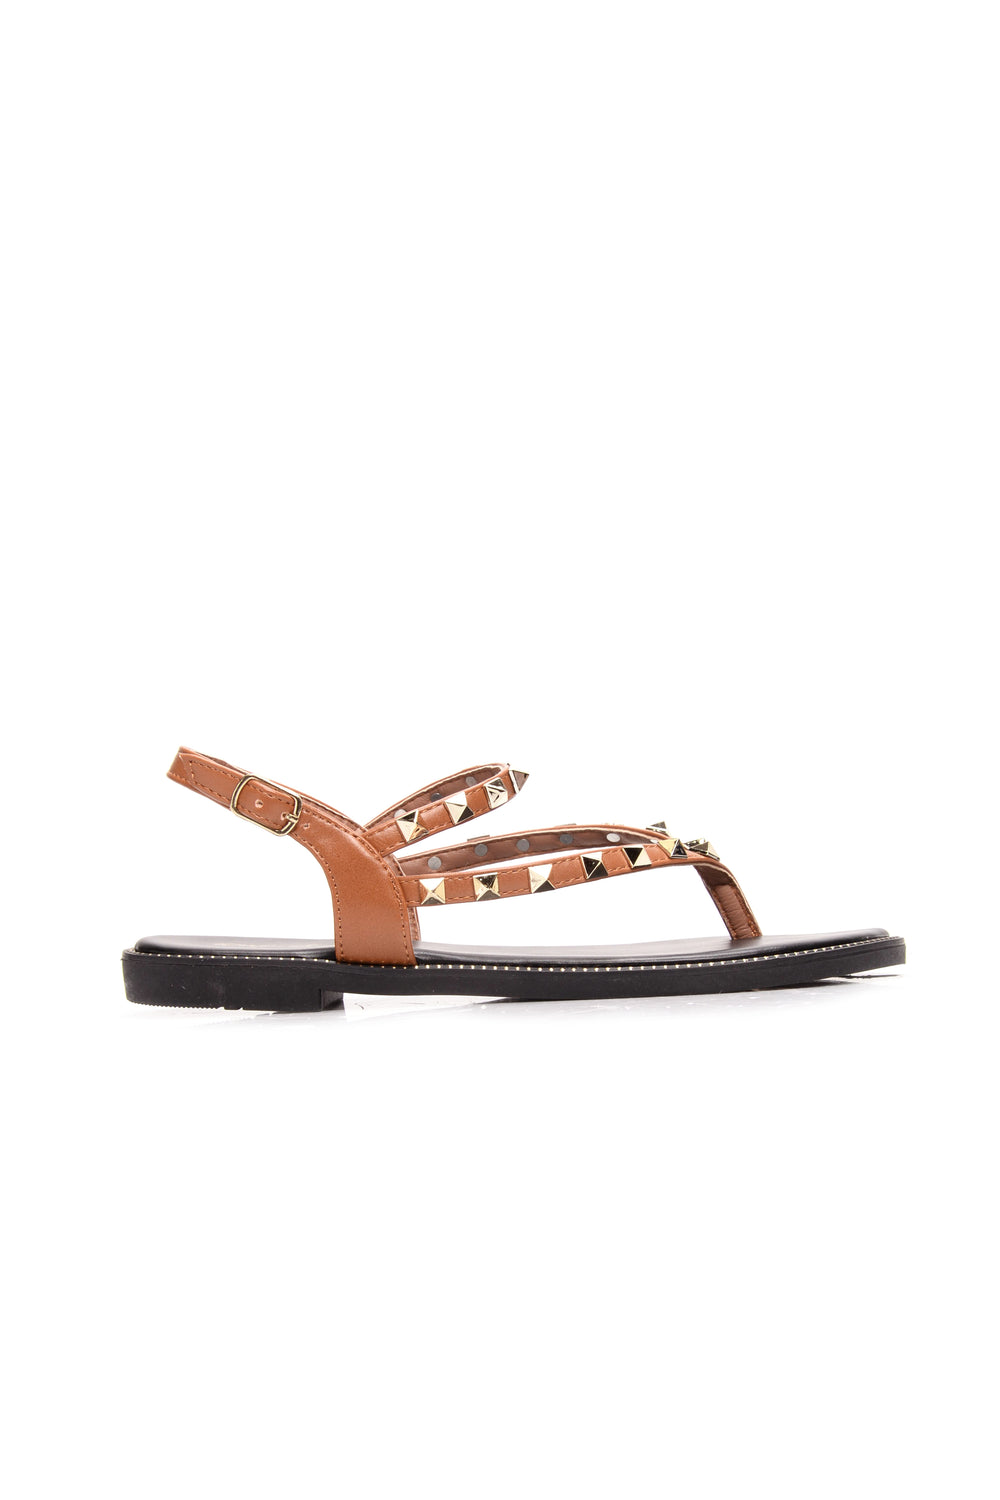 Walking With A Stud Sandal - Camel